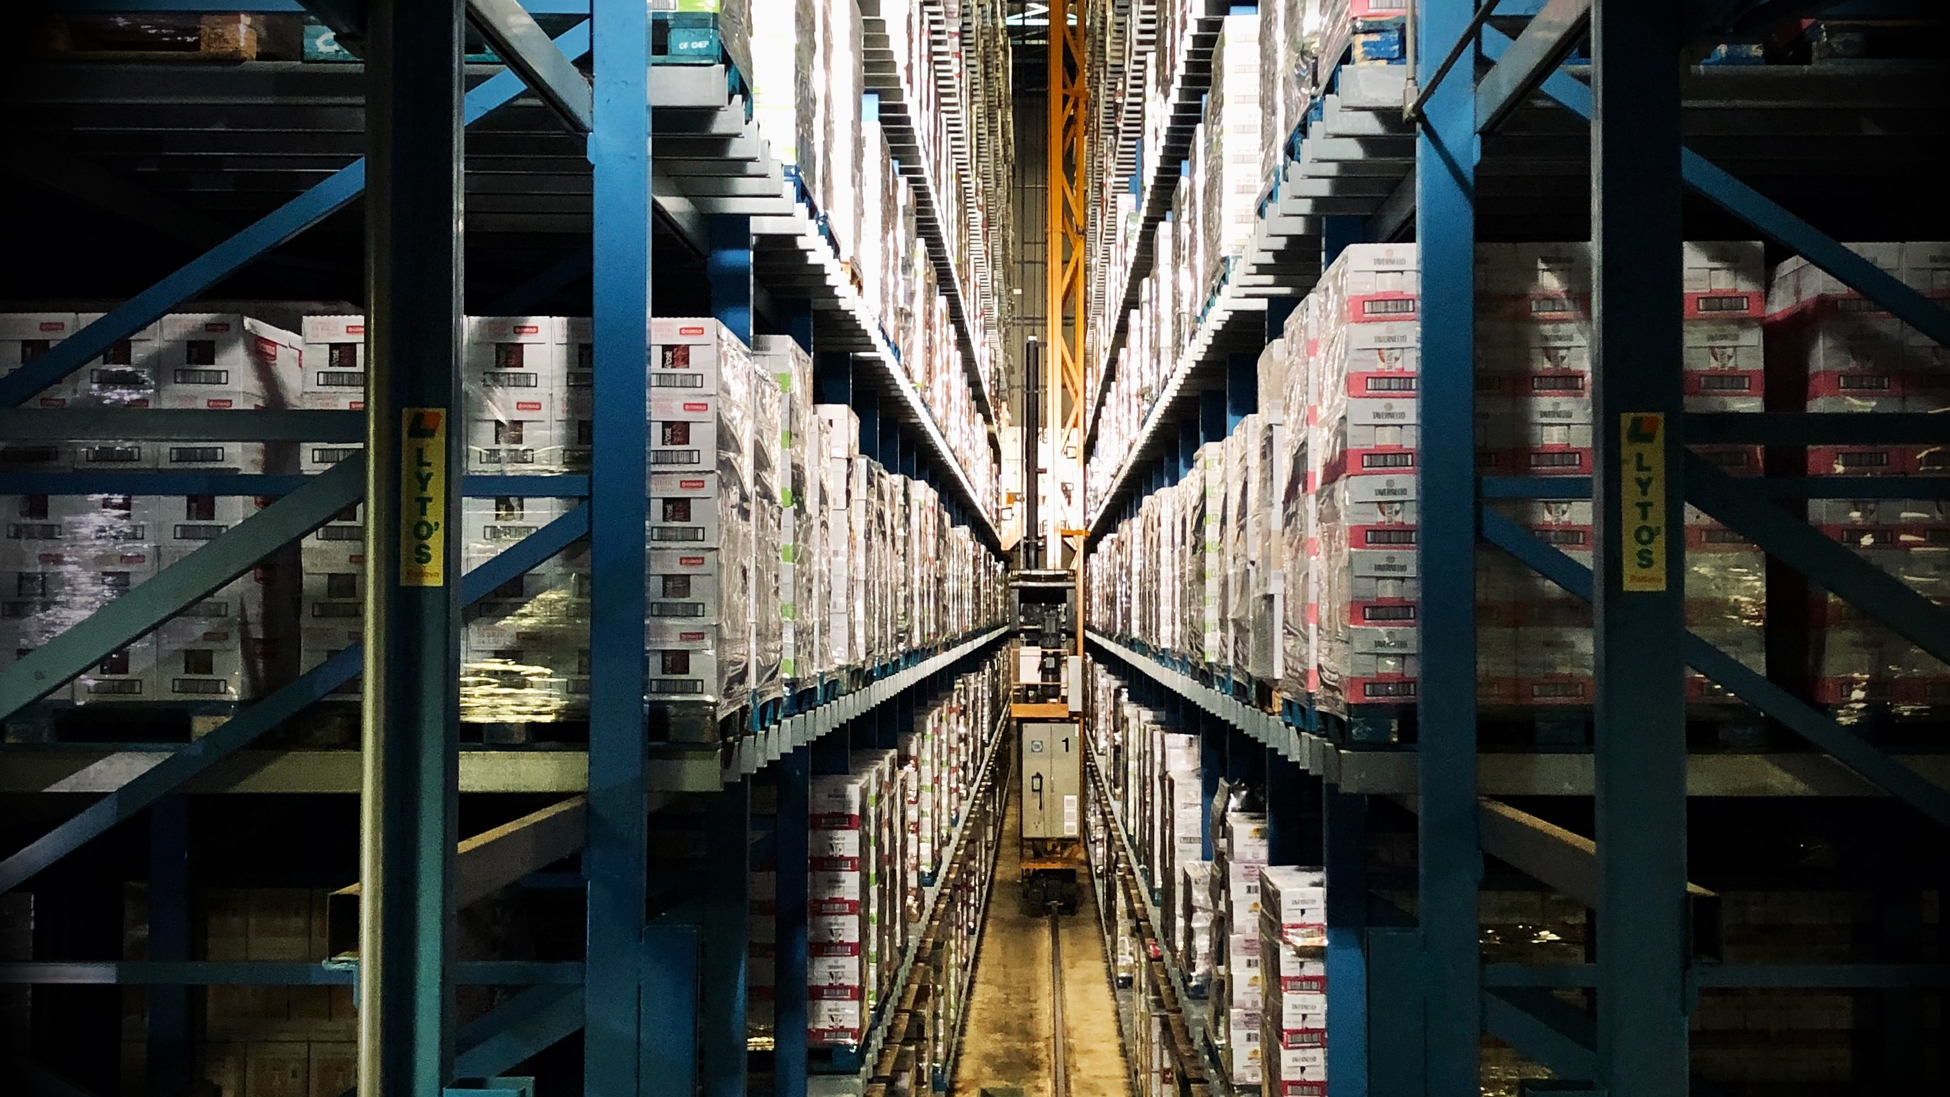 Warehouse racks that stretch for hundreds of feet